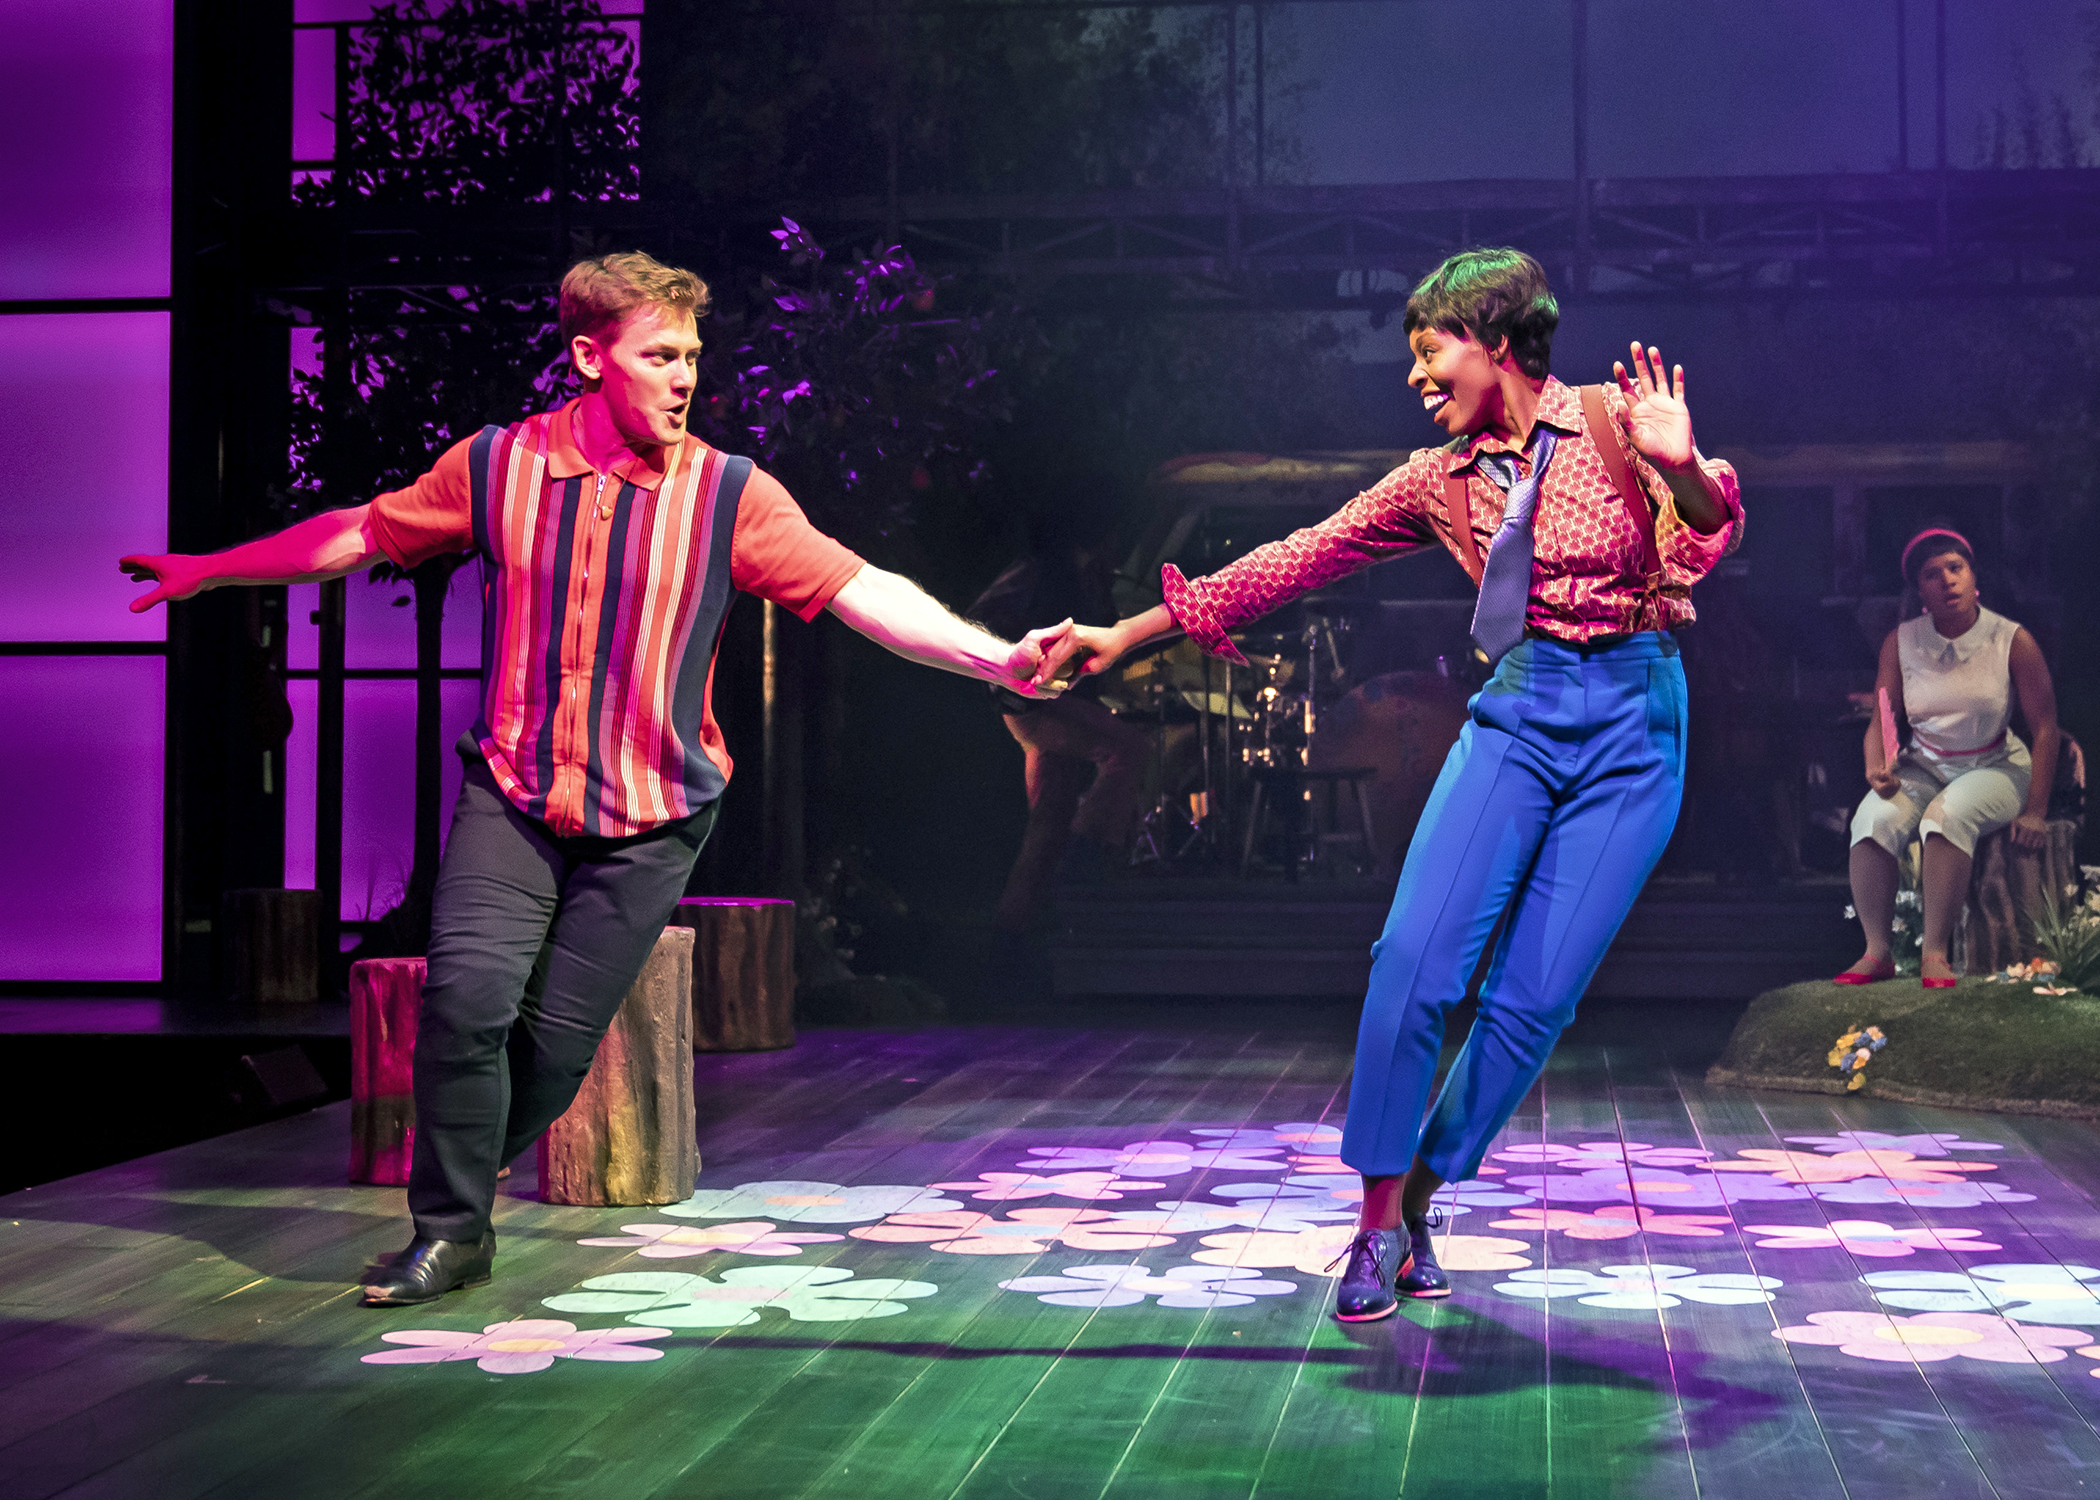 """Orlando (Liam Quealy, left) serenades his disguised love interest Rosalind (Lakeisha Renee) in Chicago Shakespeare Theater's Beatles music-infused production of""""As You Like It."""""""